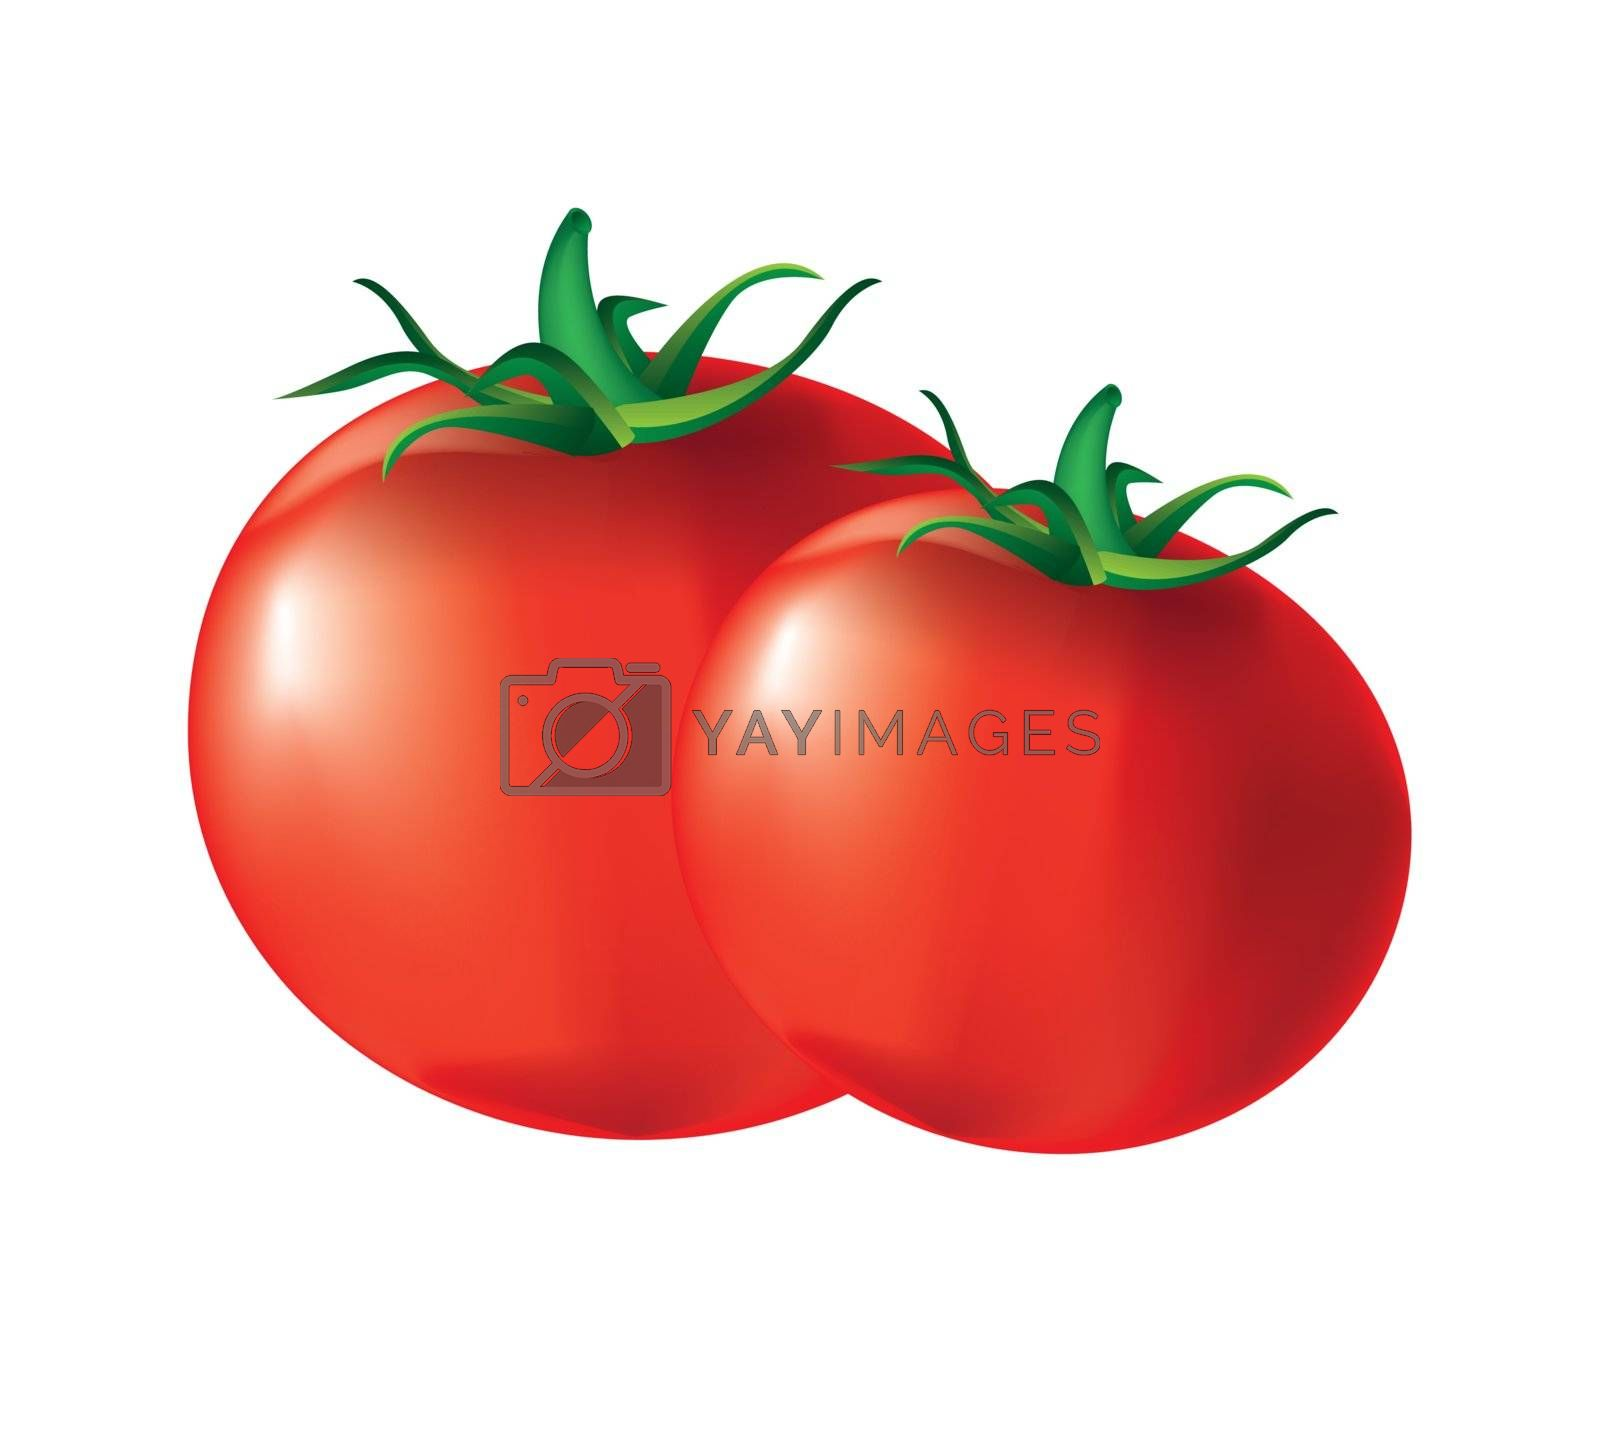 two tomatoes in the foreground  over white background